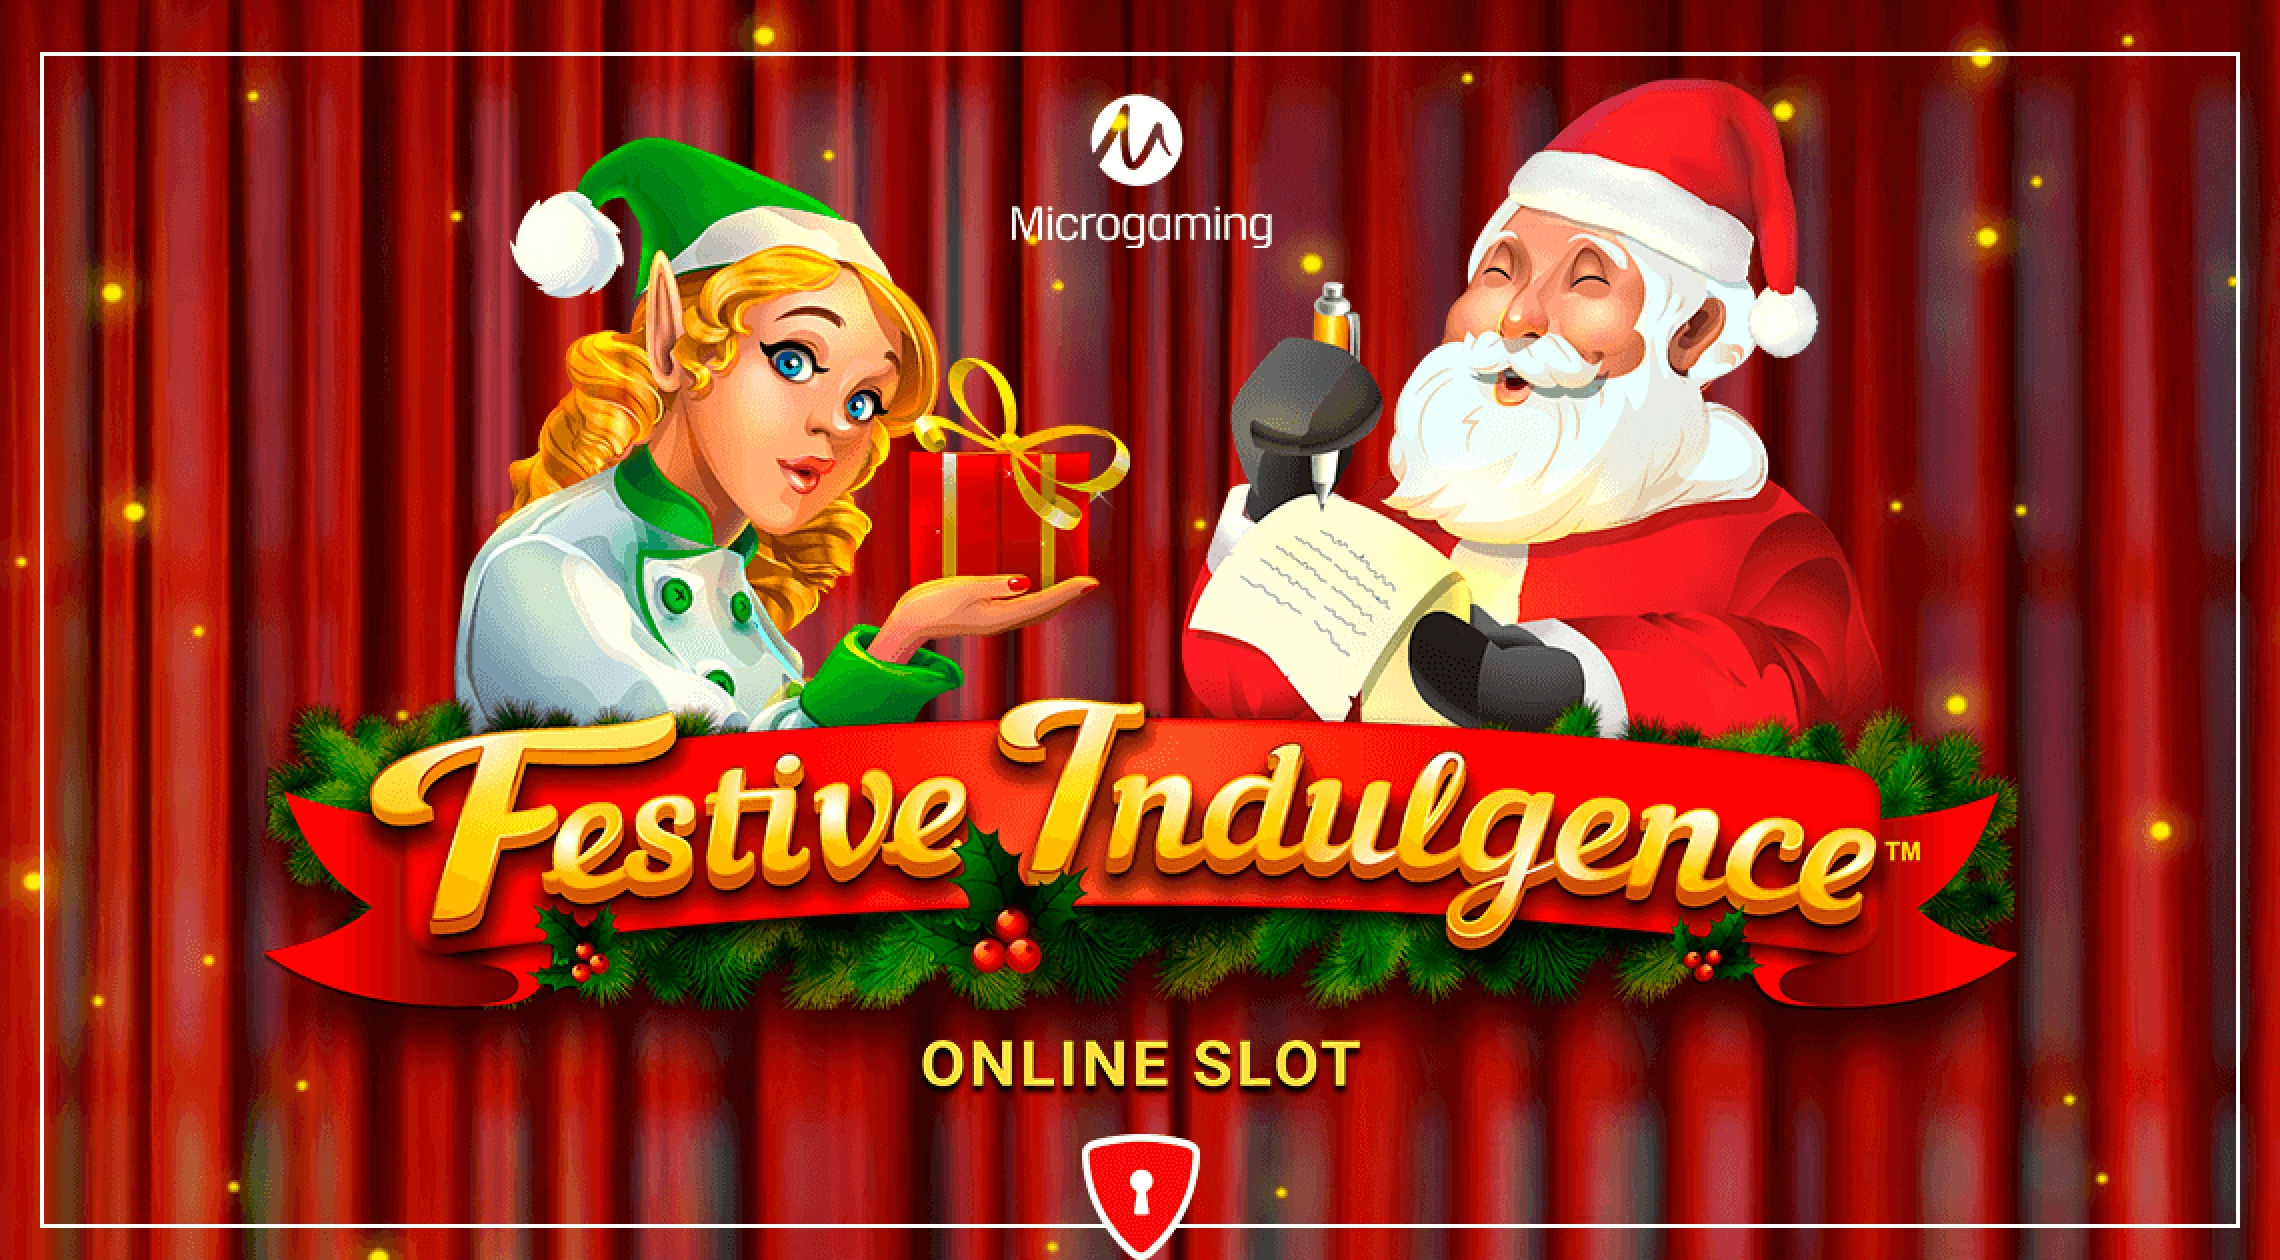 The Festive Indulgence Online Slot Demo Game by Microgaming